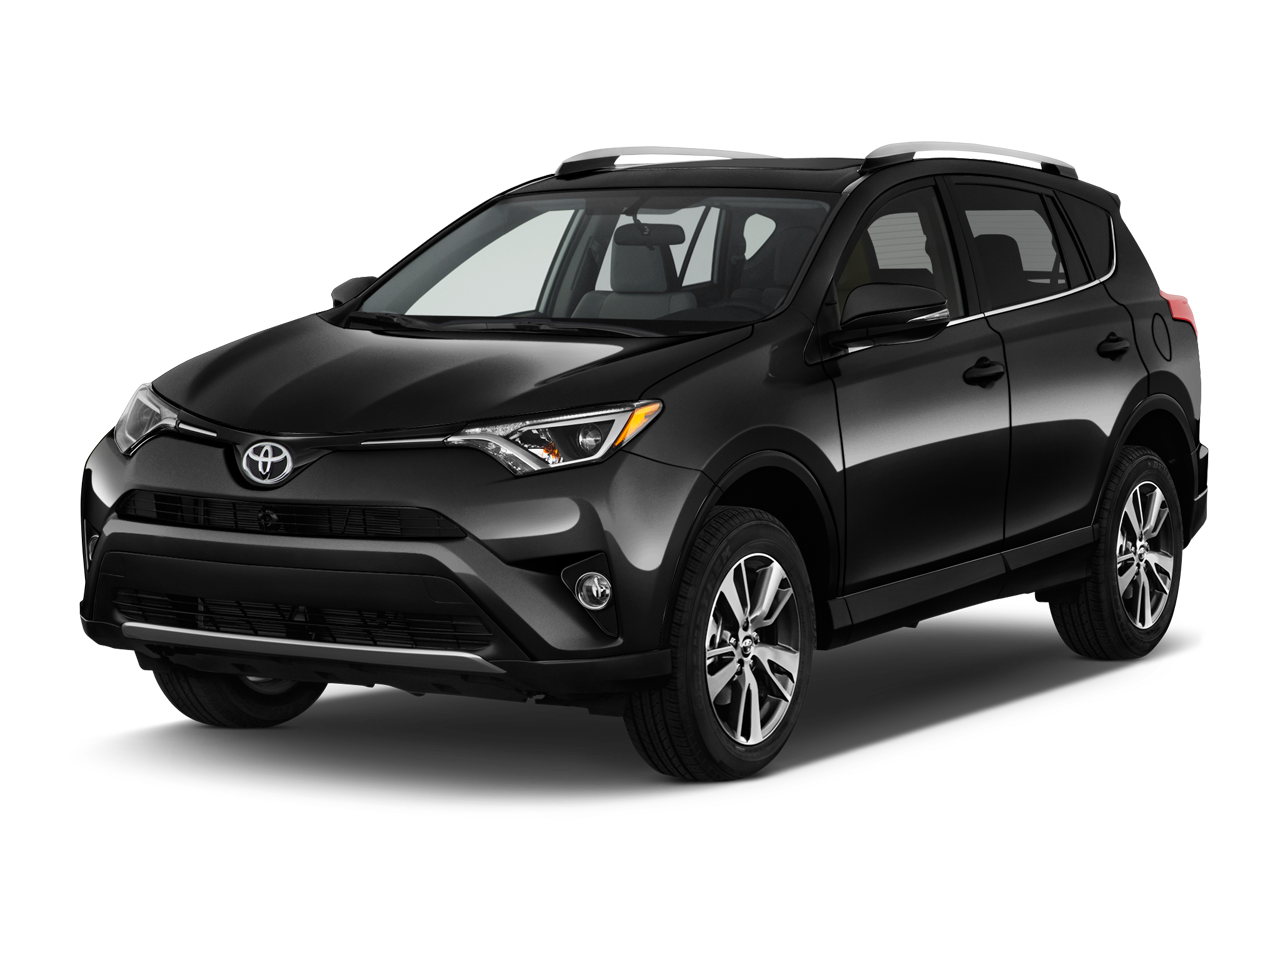 new 2017 toyota rav4 xle near olathe ks olathe toyota. Black Bedroom Furniture Sets. Home Design Ideas